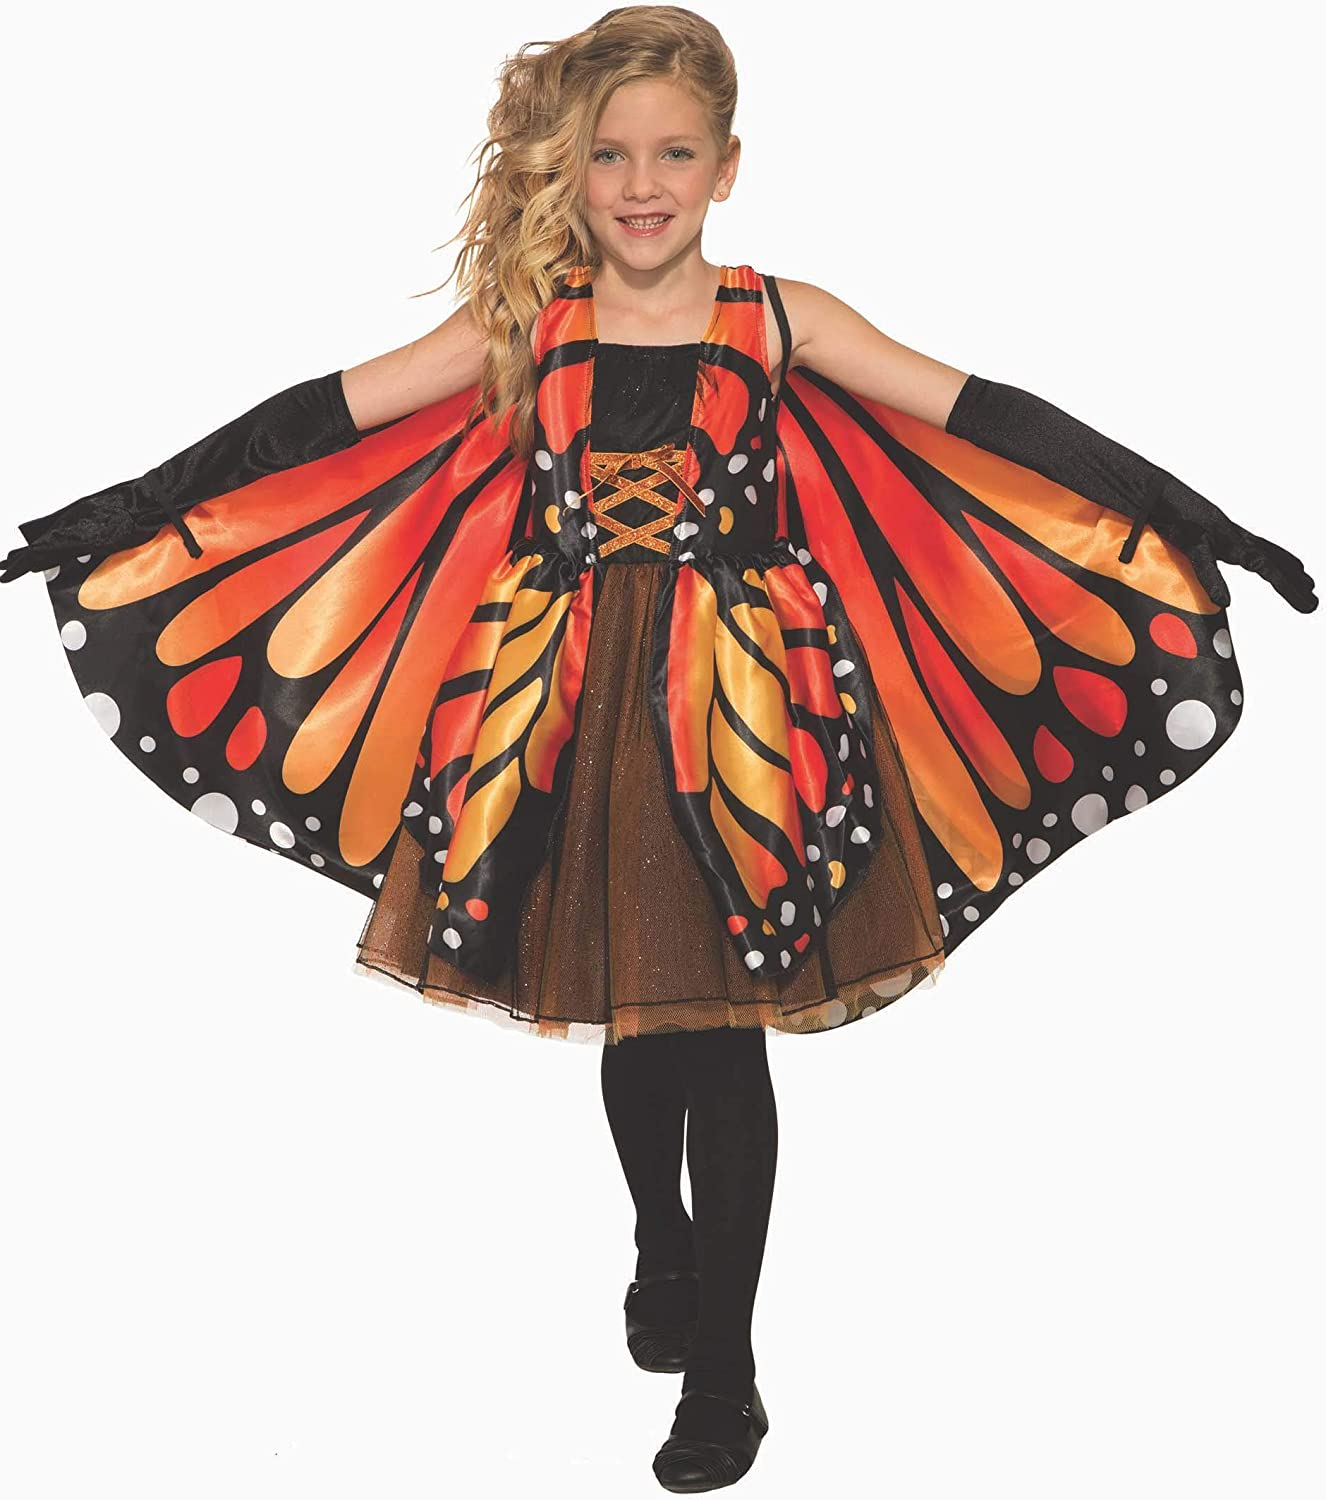 Butterfly Girl Costume for Kids